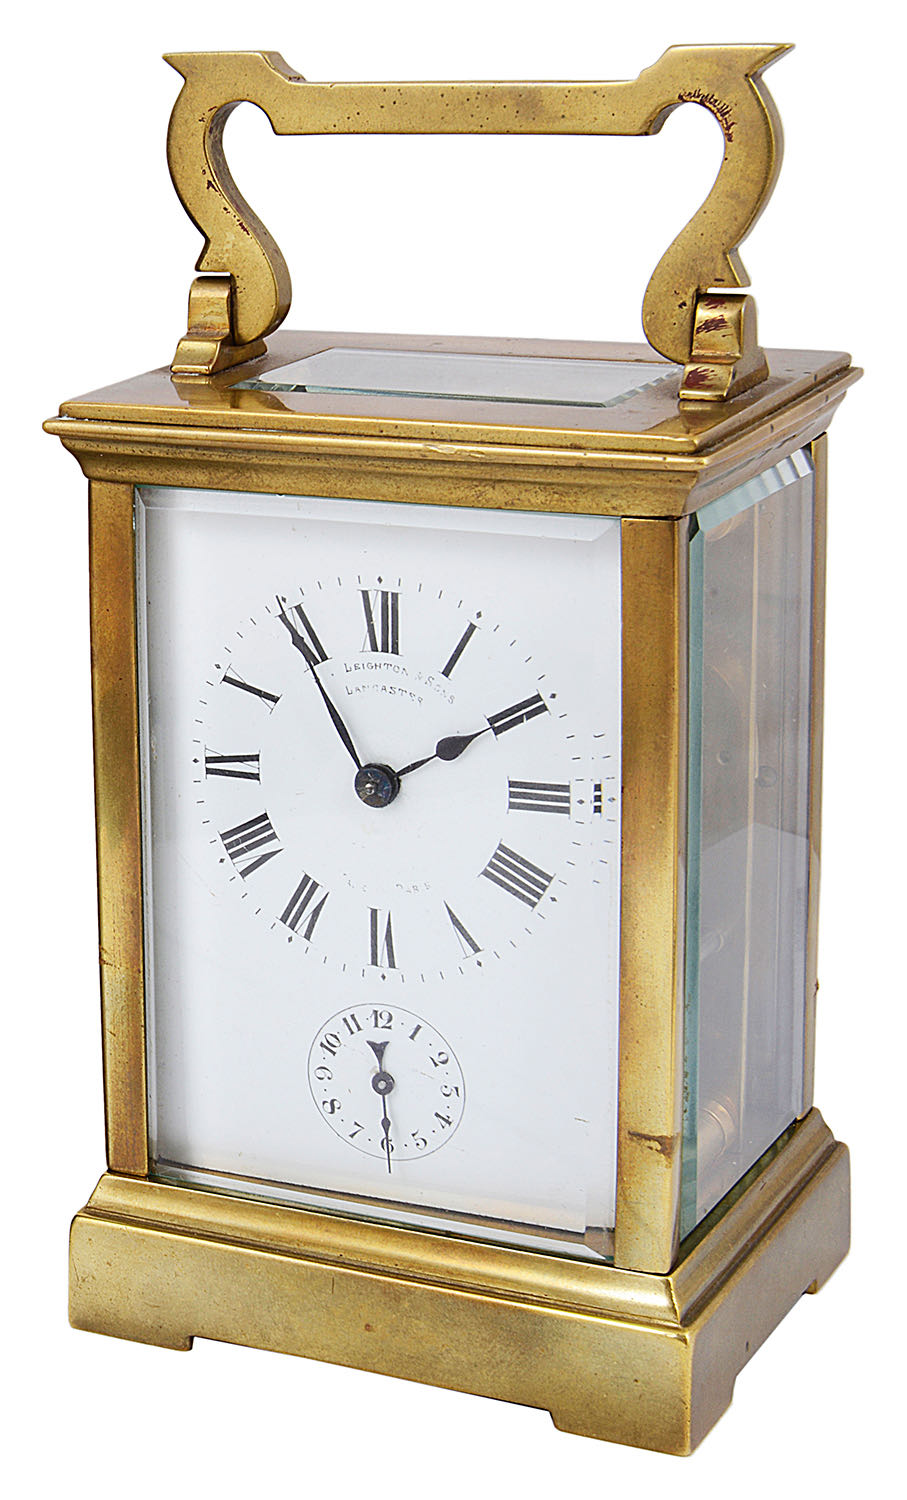 Lot 35 - An early 20th century French gilt brass four pane carriage clock